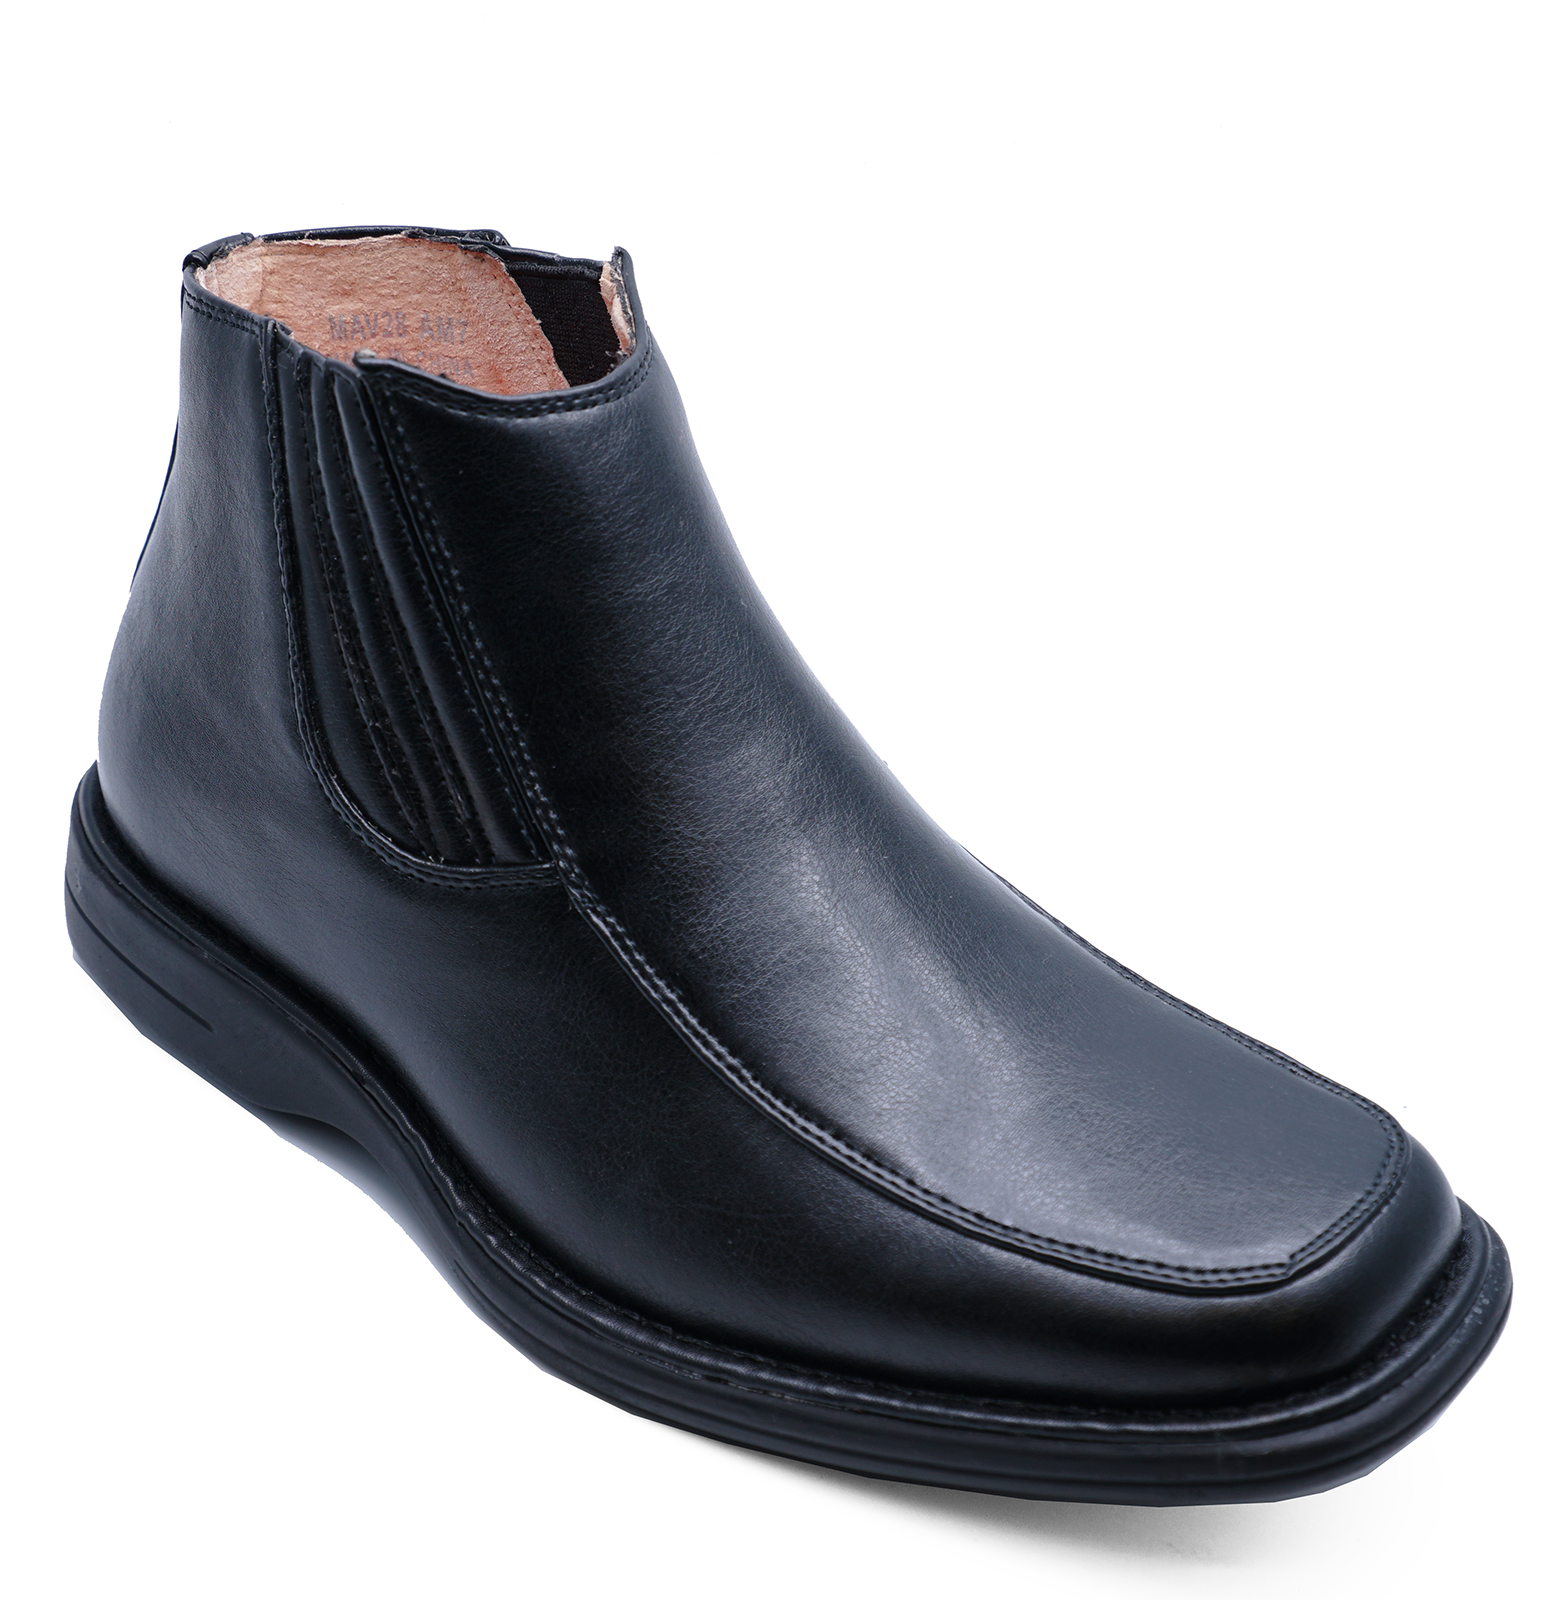 7fe5ff75607a5 Sentinel MENS BLACK SMART FORMAL WEDDING PULL-ON ANKLE WORK BOOTS SHOES  SIZES 7-11